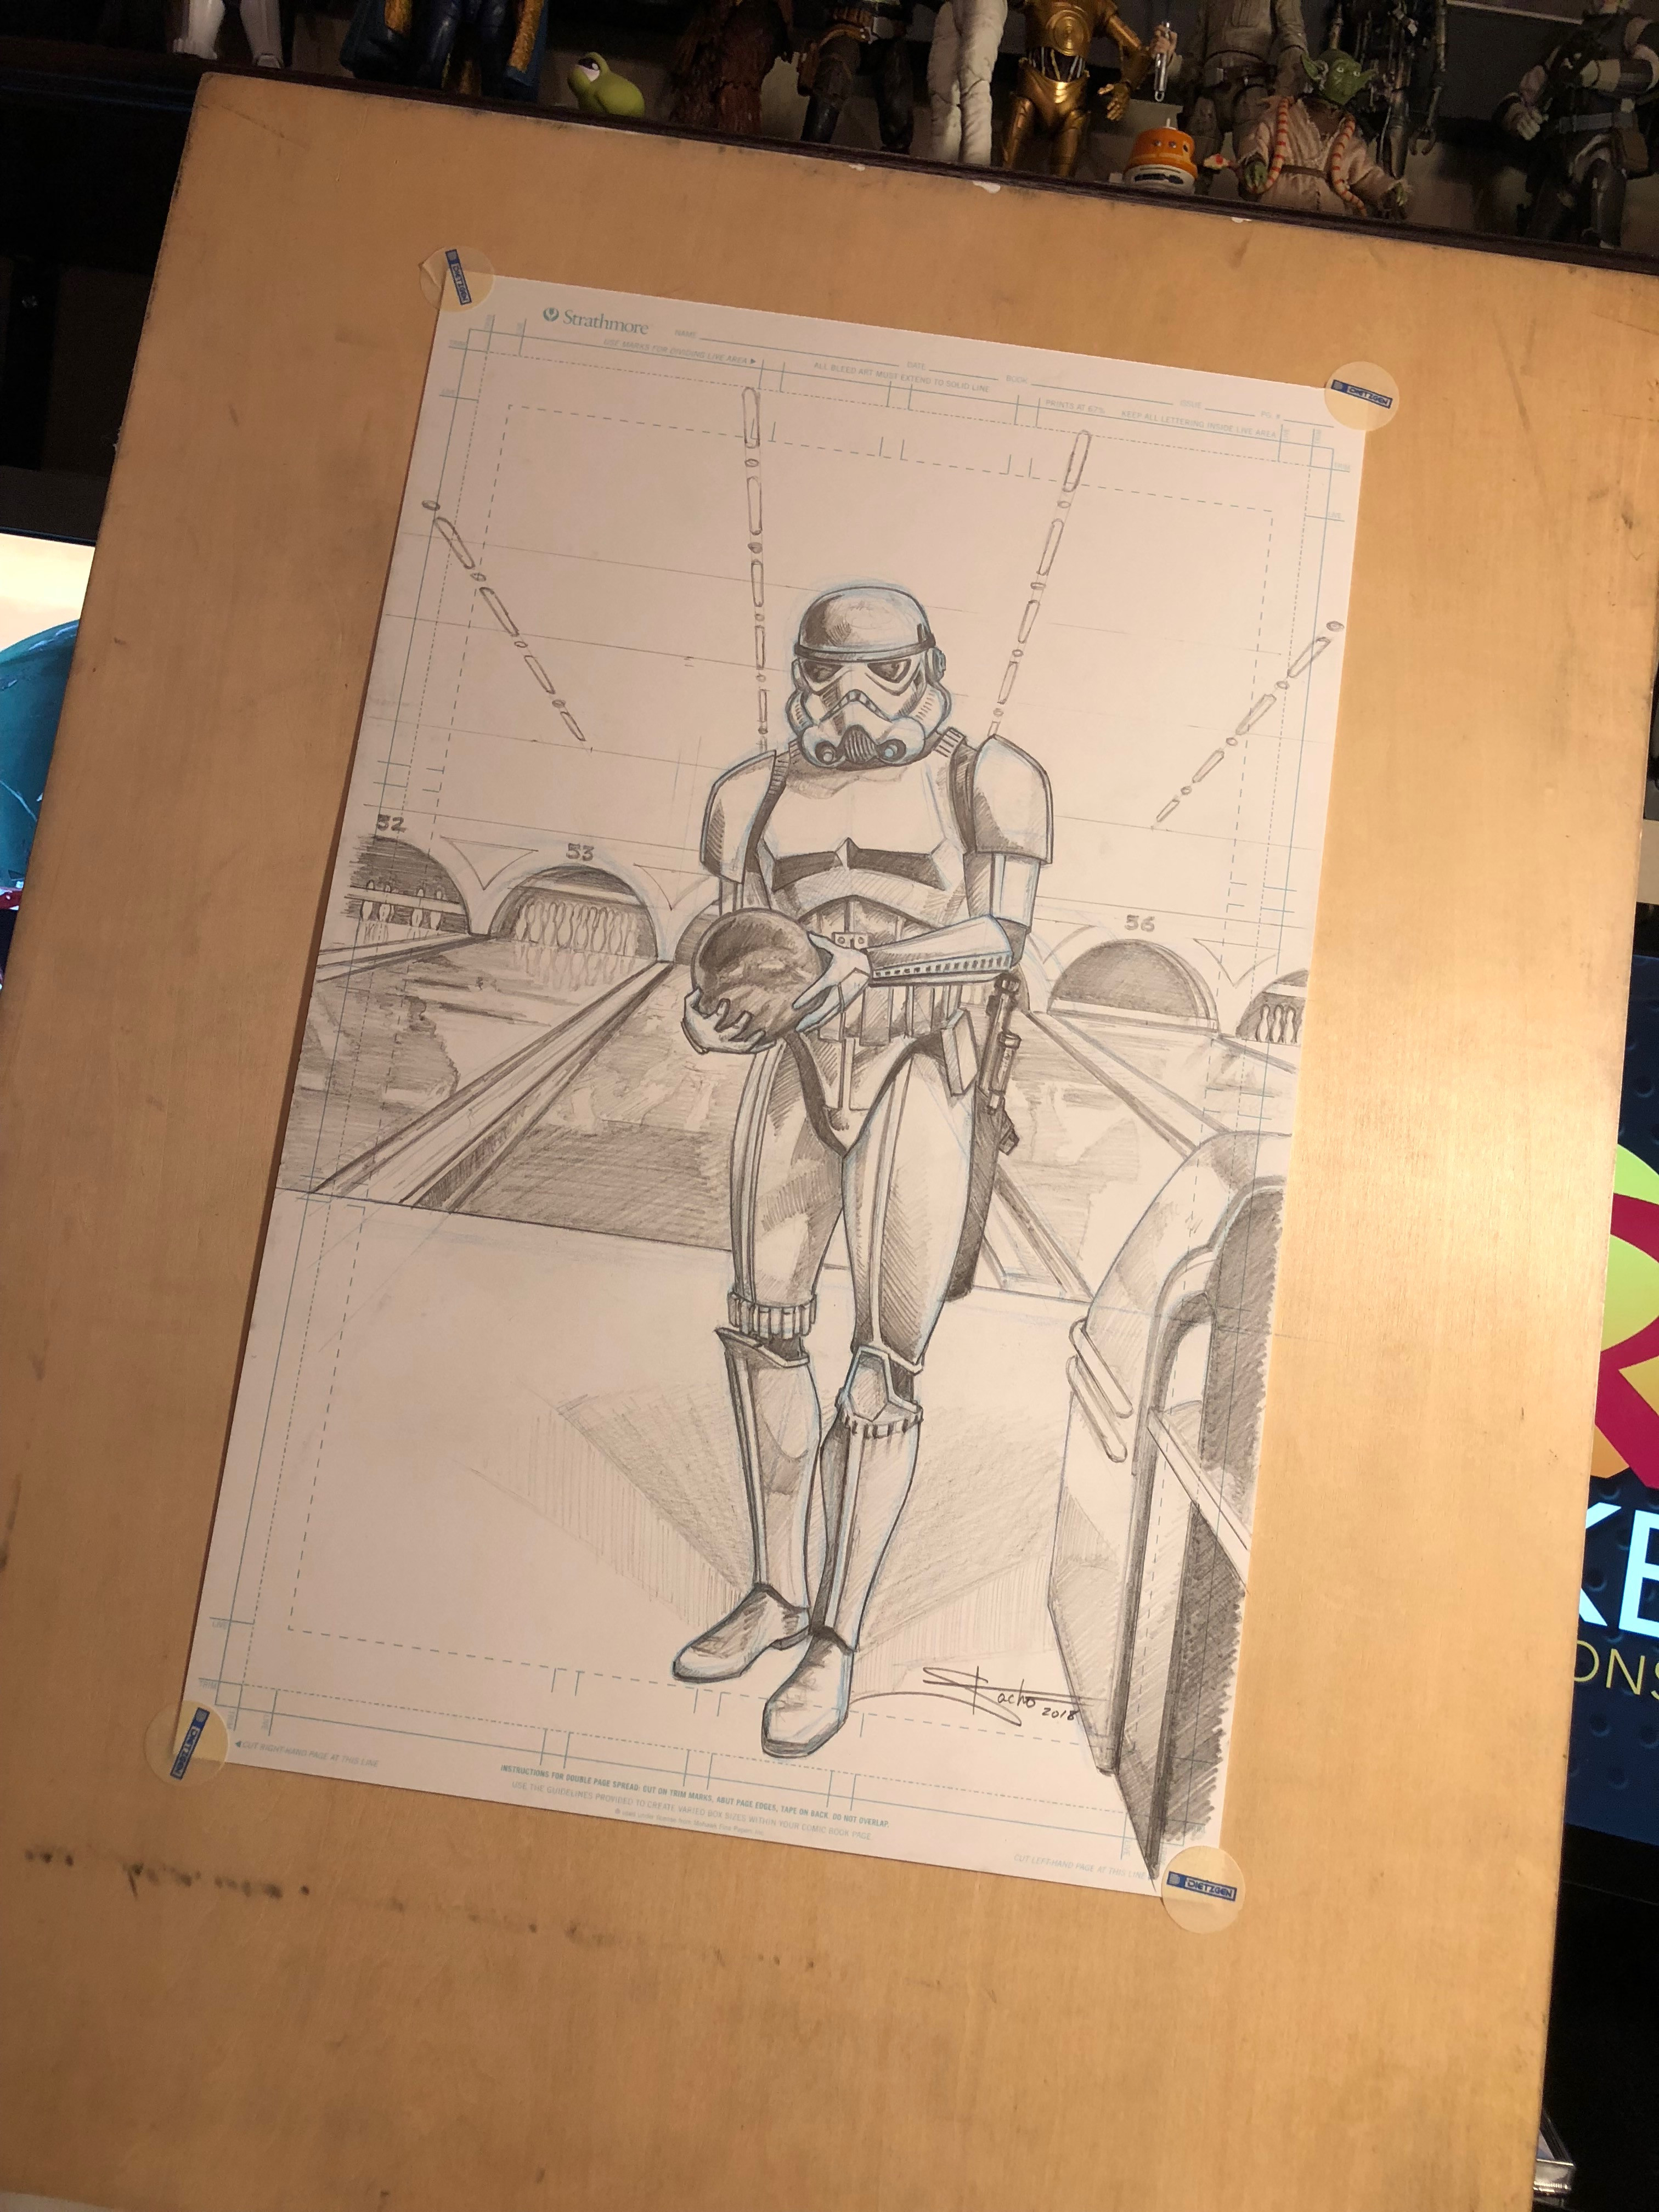 The original concept sketch. The dude was added later.